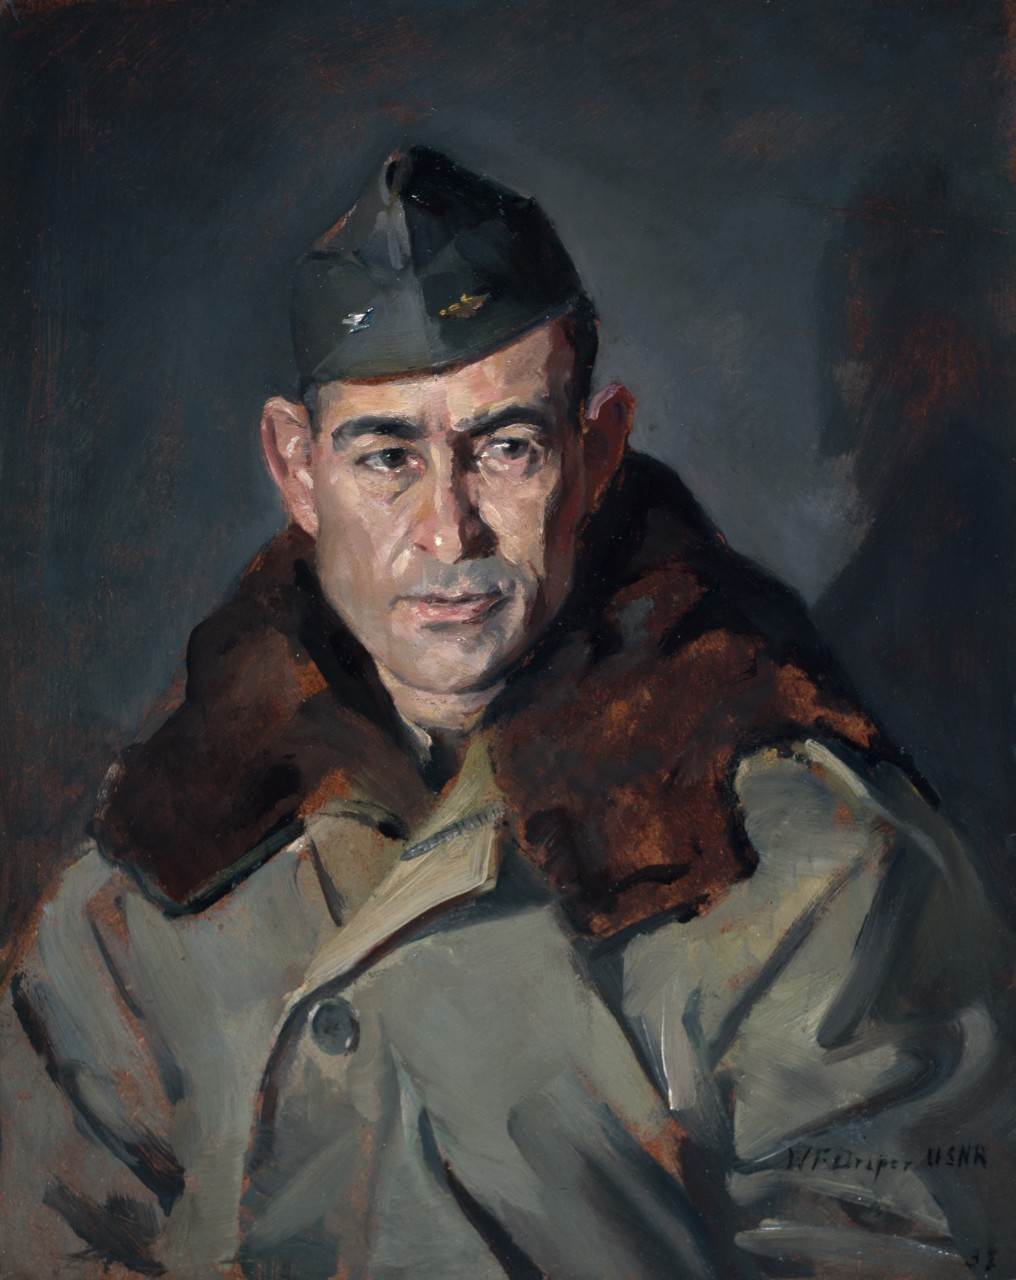 Portrait of a navy officer in a cold weather outerwear